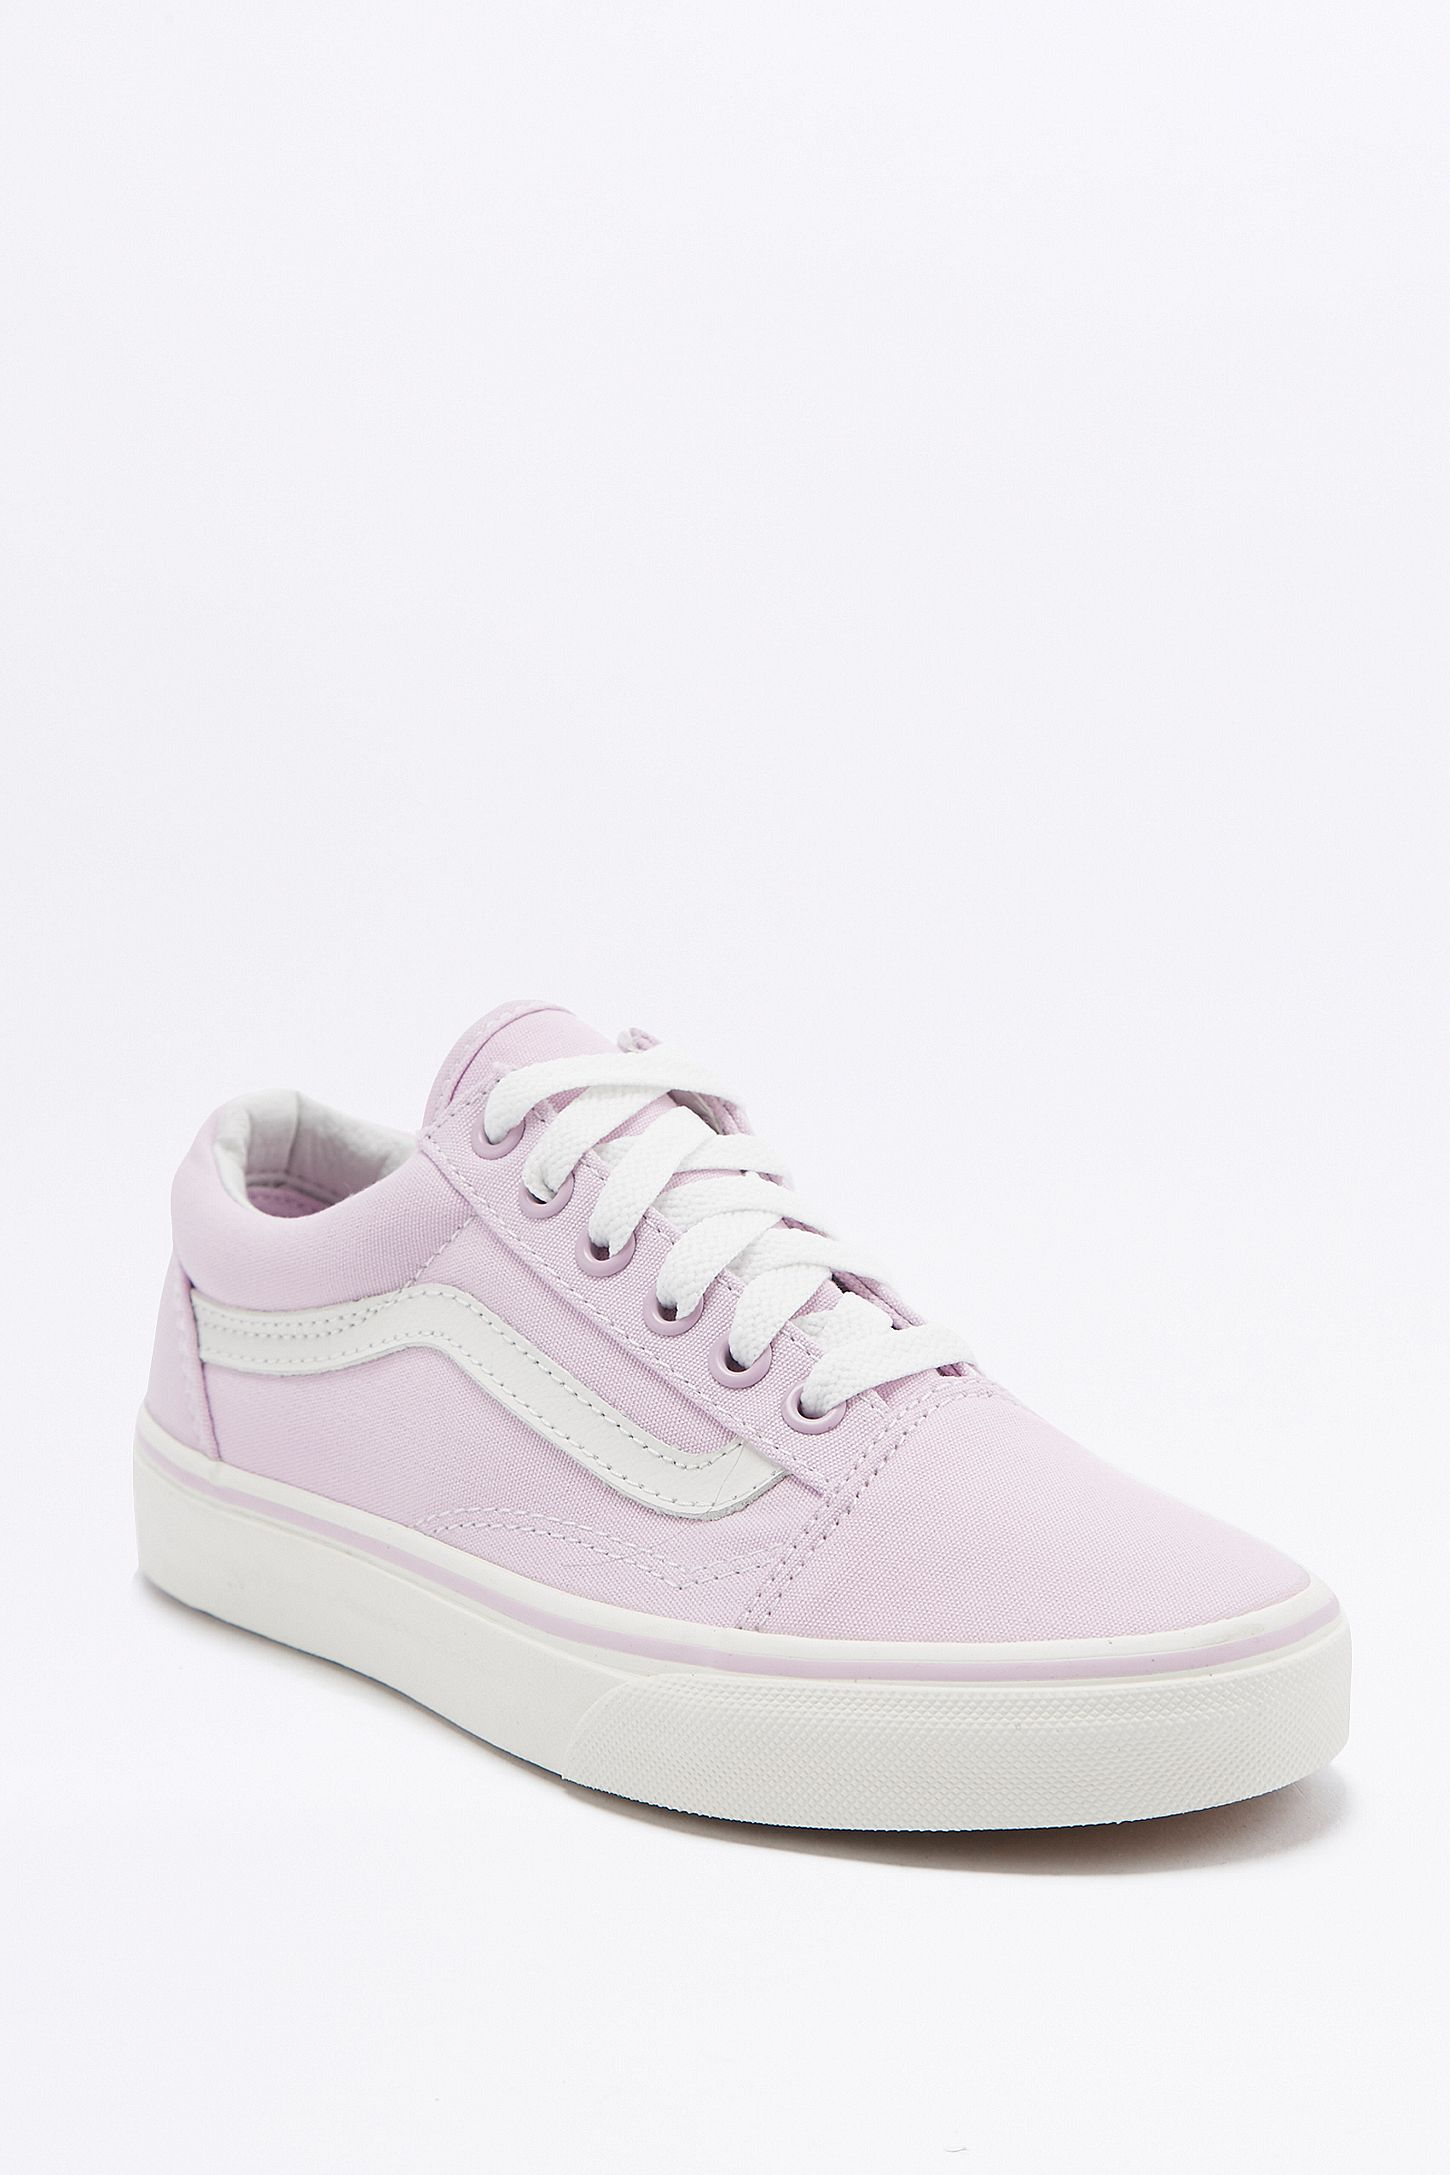 1433a28cb14f Vans Old Skool Baby Pink Trainers